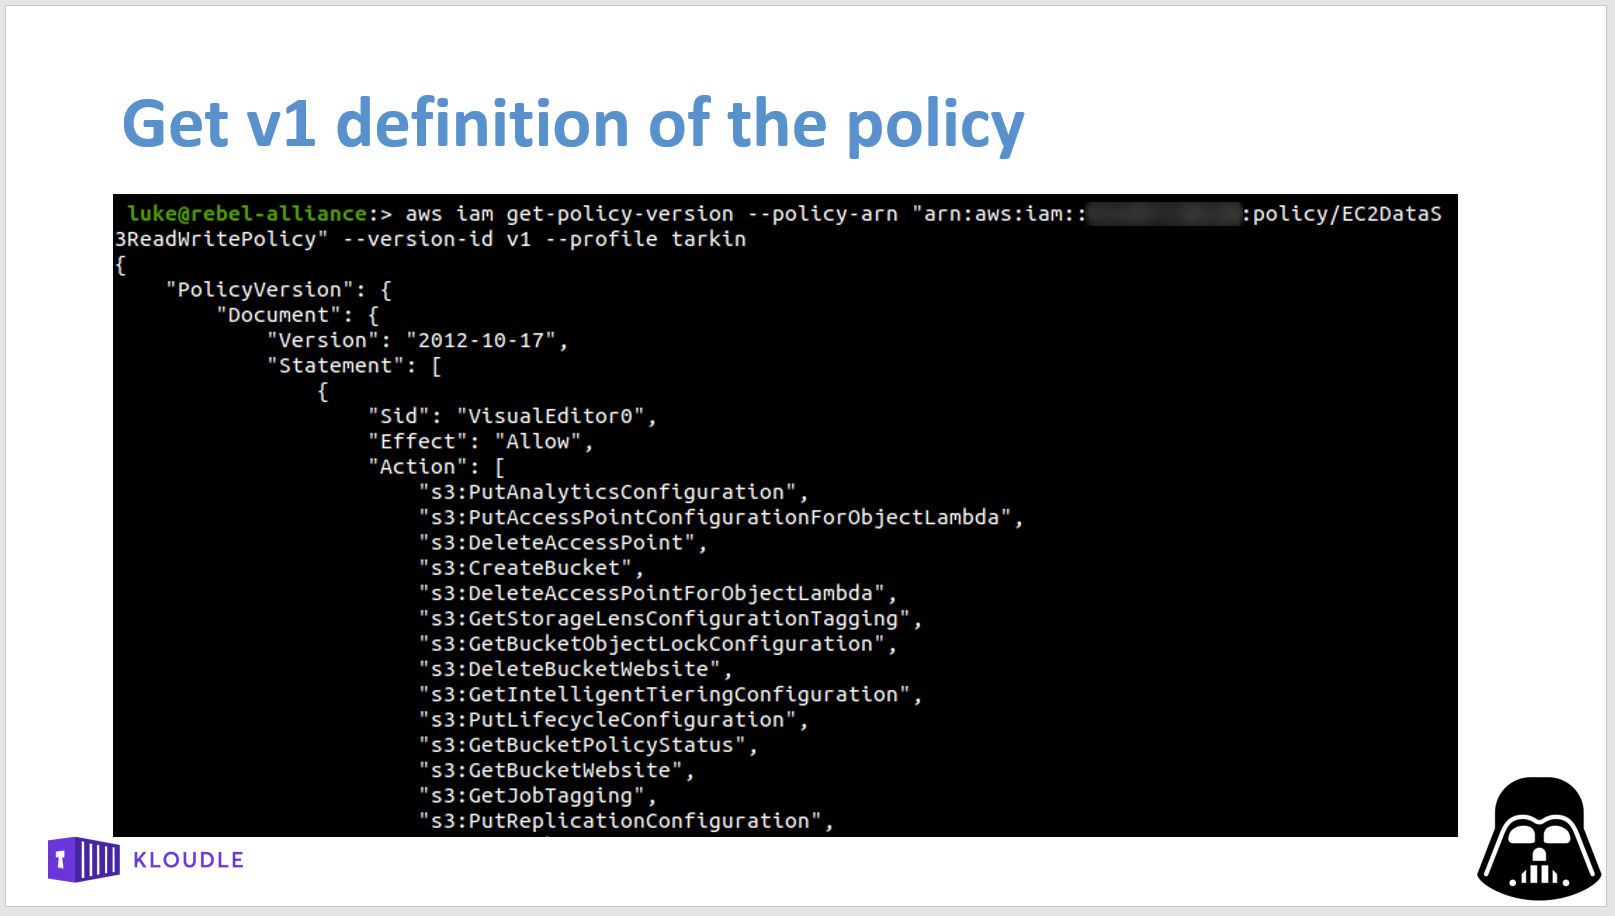 Get v1 definition of the policy